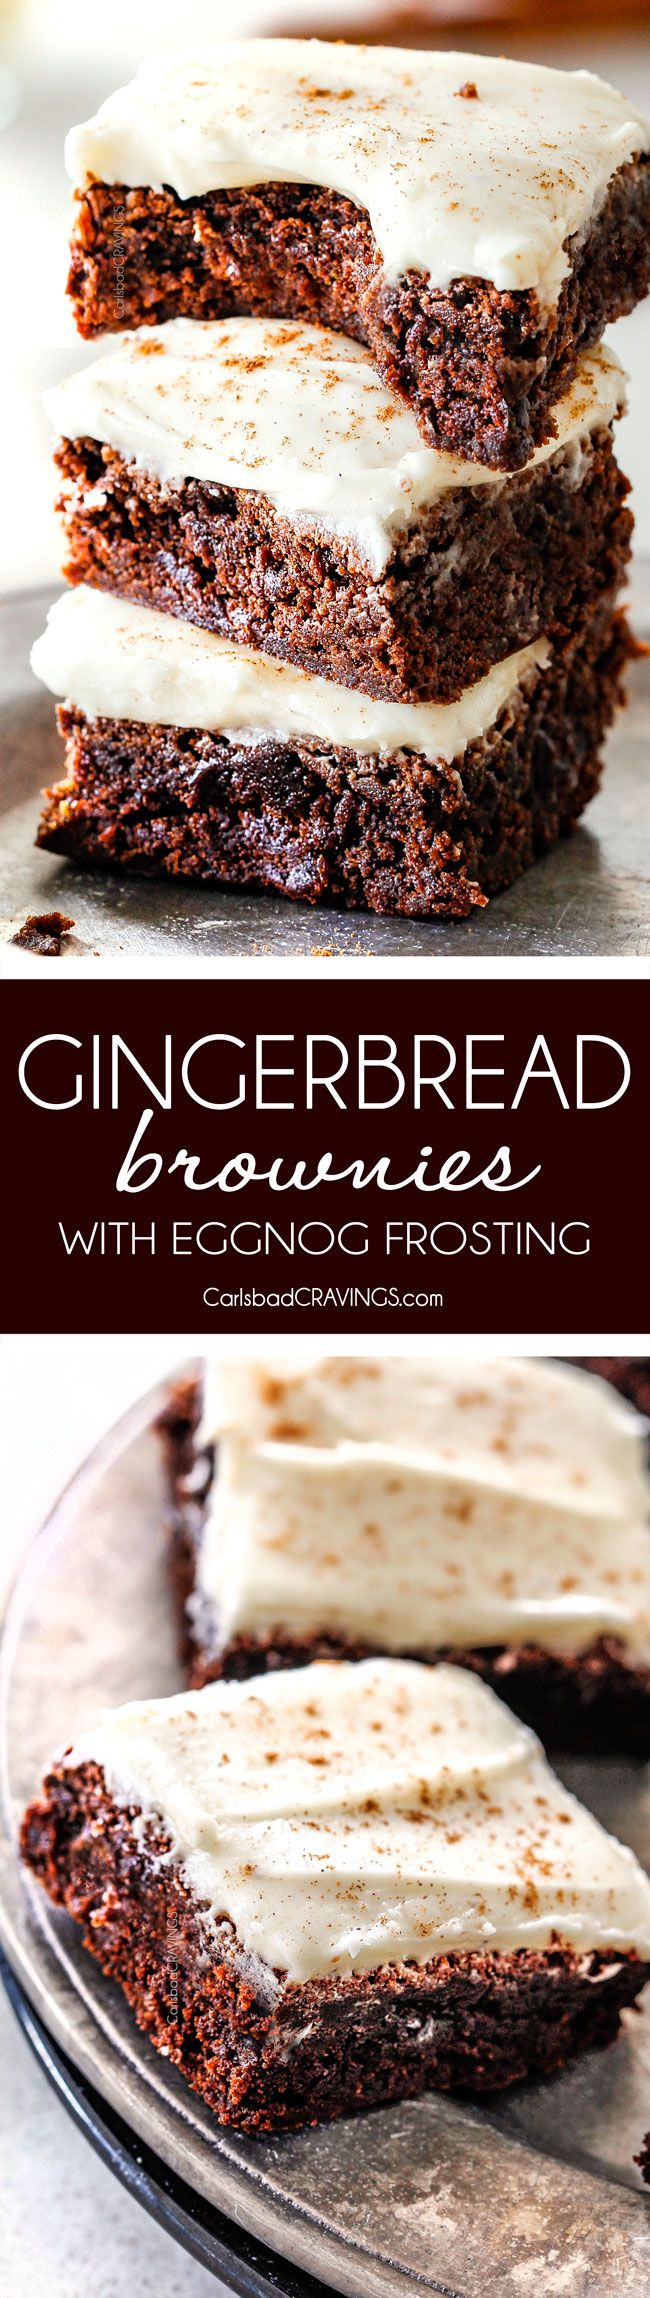 These soft and chewy Gingerbread Brownies are our family's new favorite holiday treat!  And the luscious Eggnog Cream Cheese Frosting is incredible!  I put it on everything!